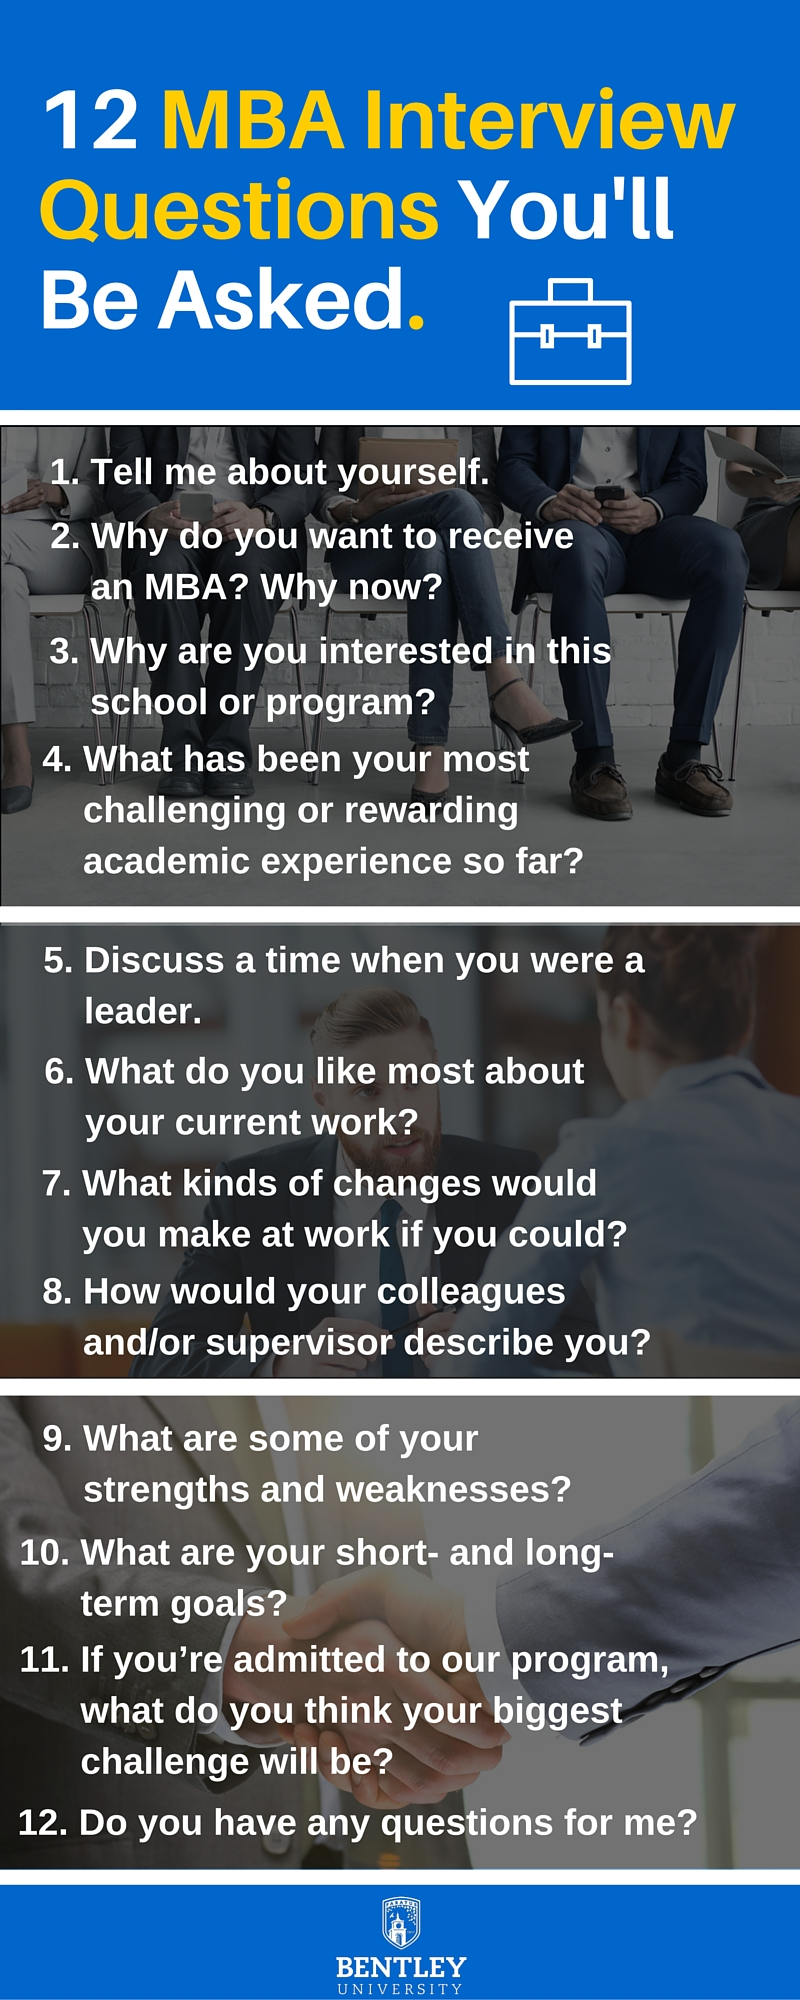 12 MBA Interview Questions